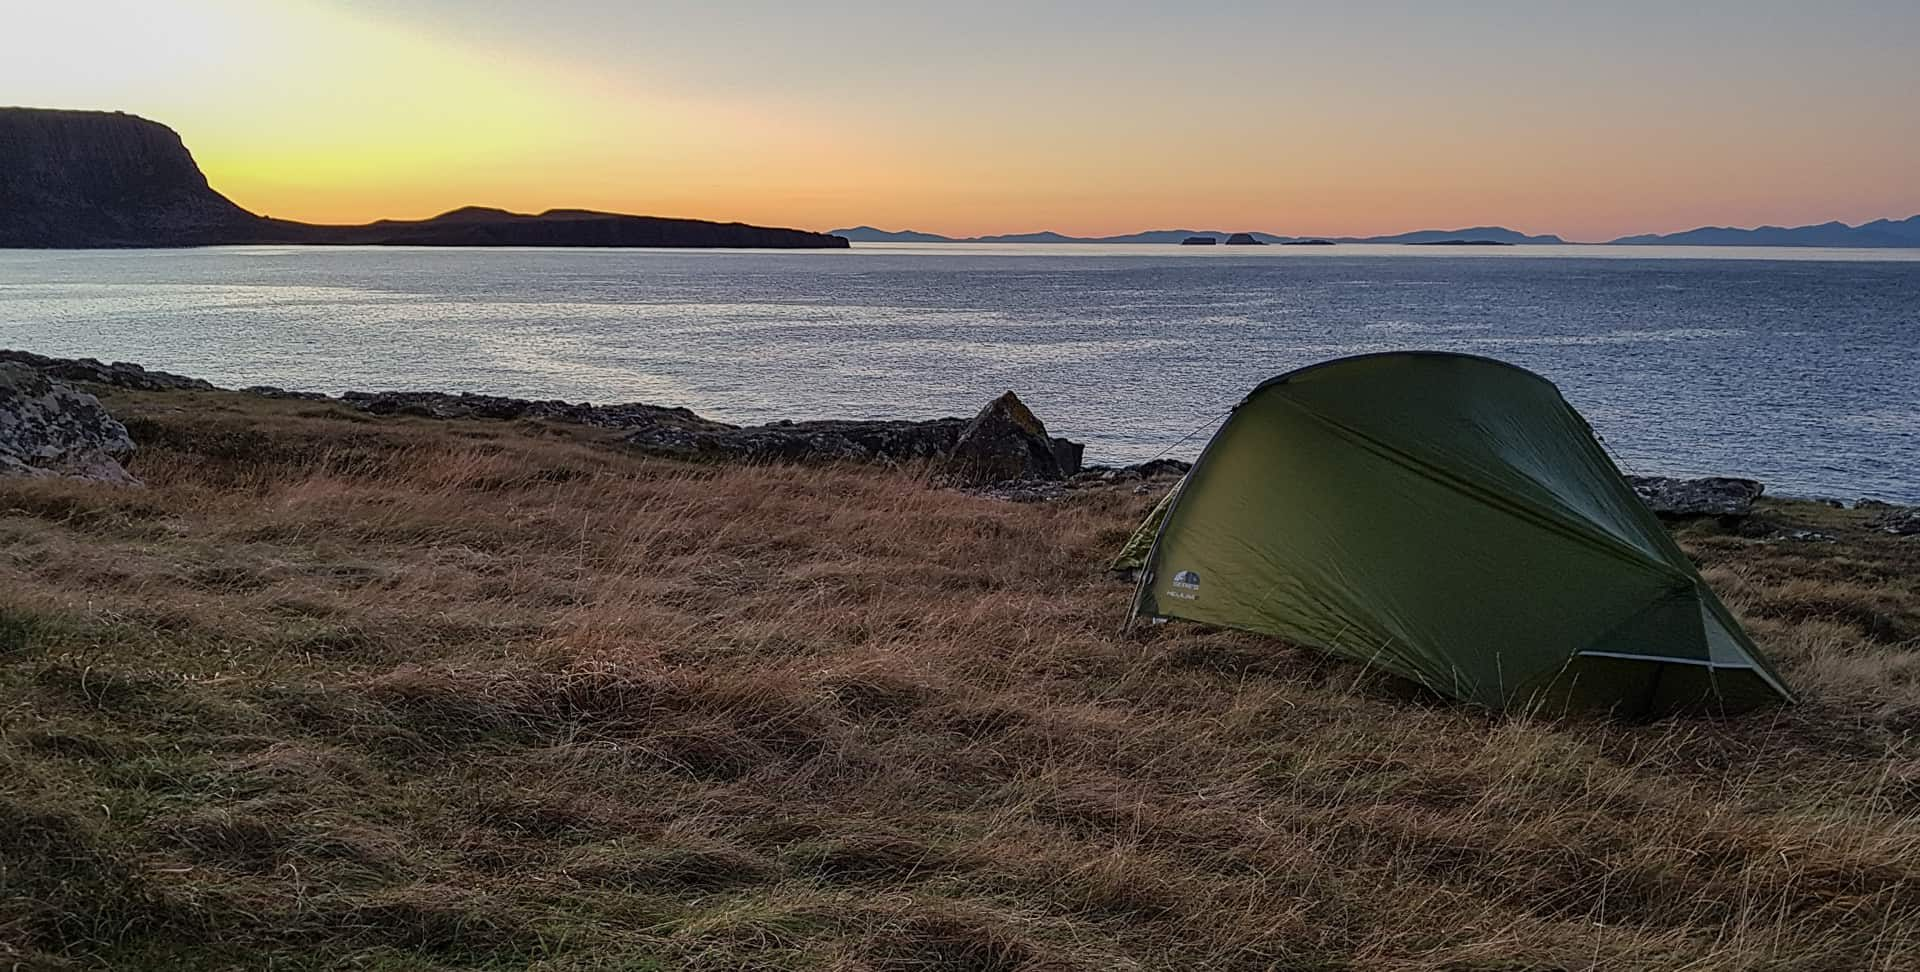 Room with a view, my tent perched near the shoreline on the northern edge of Skye